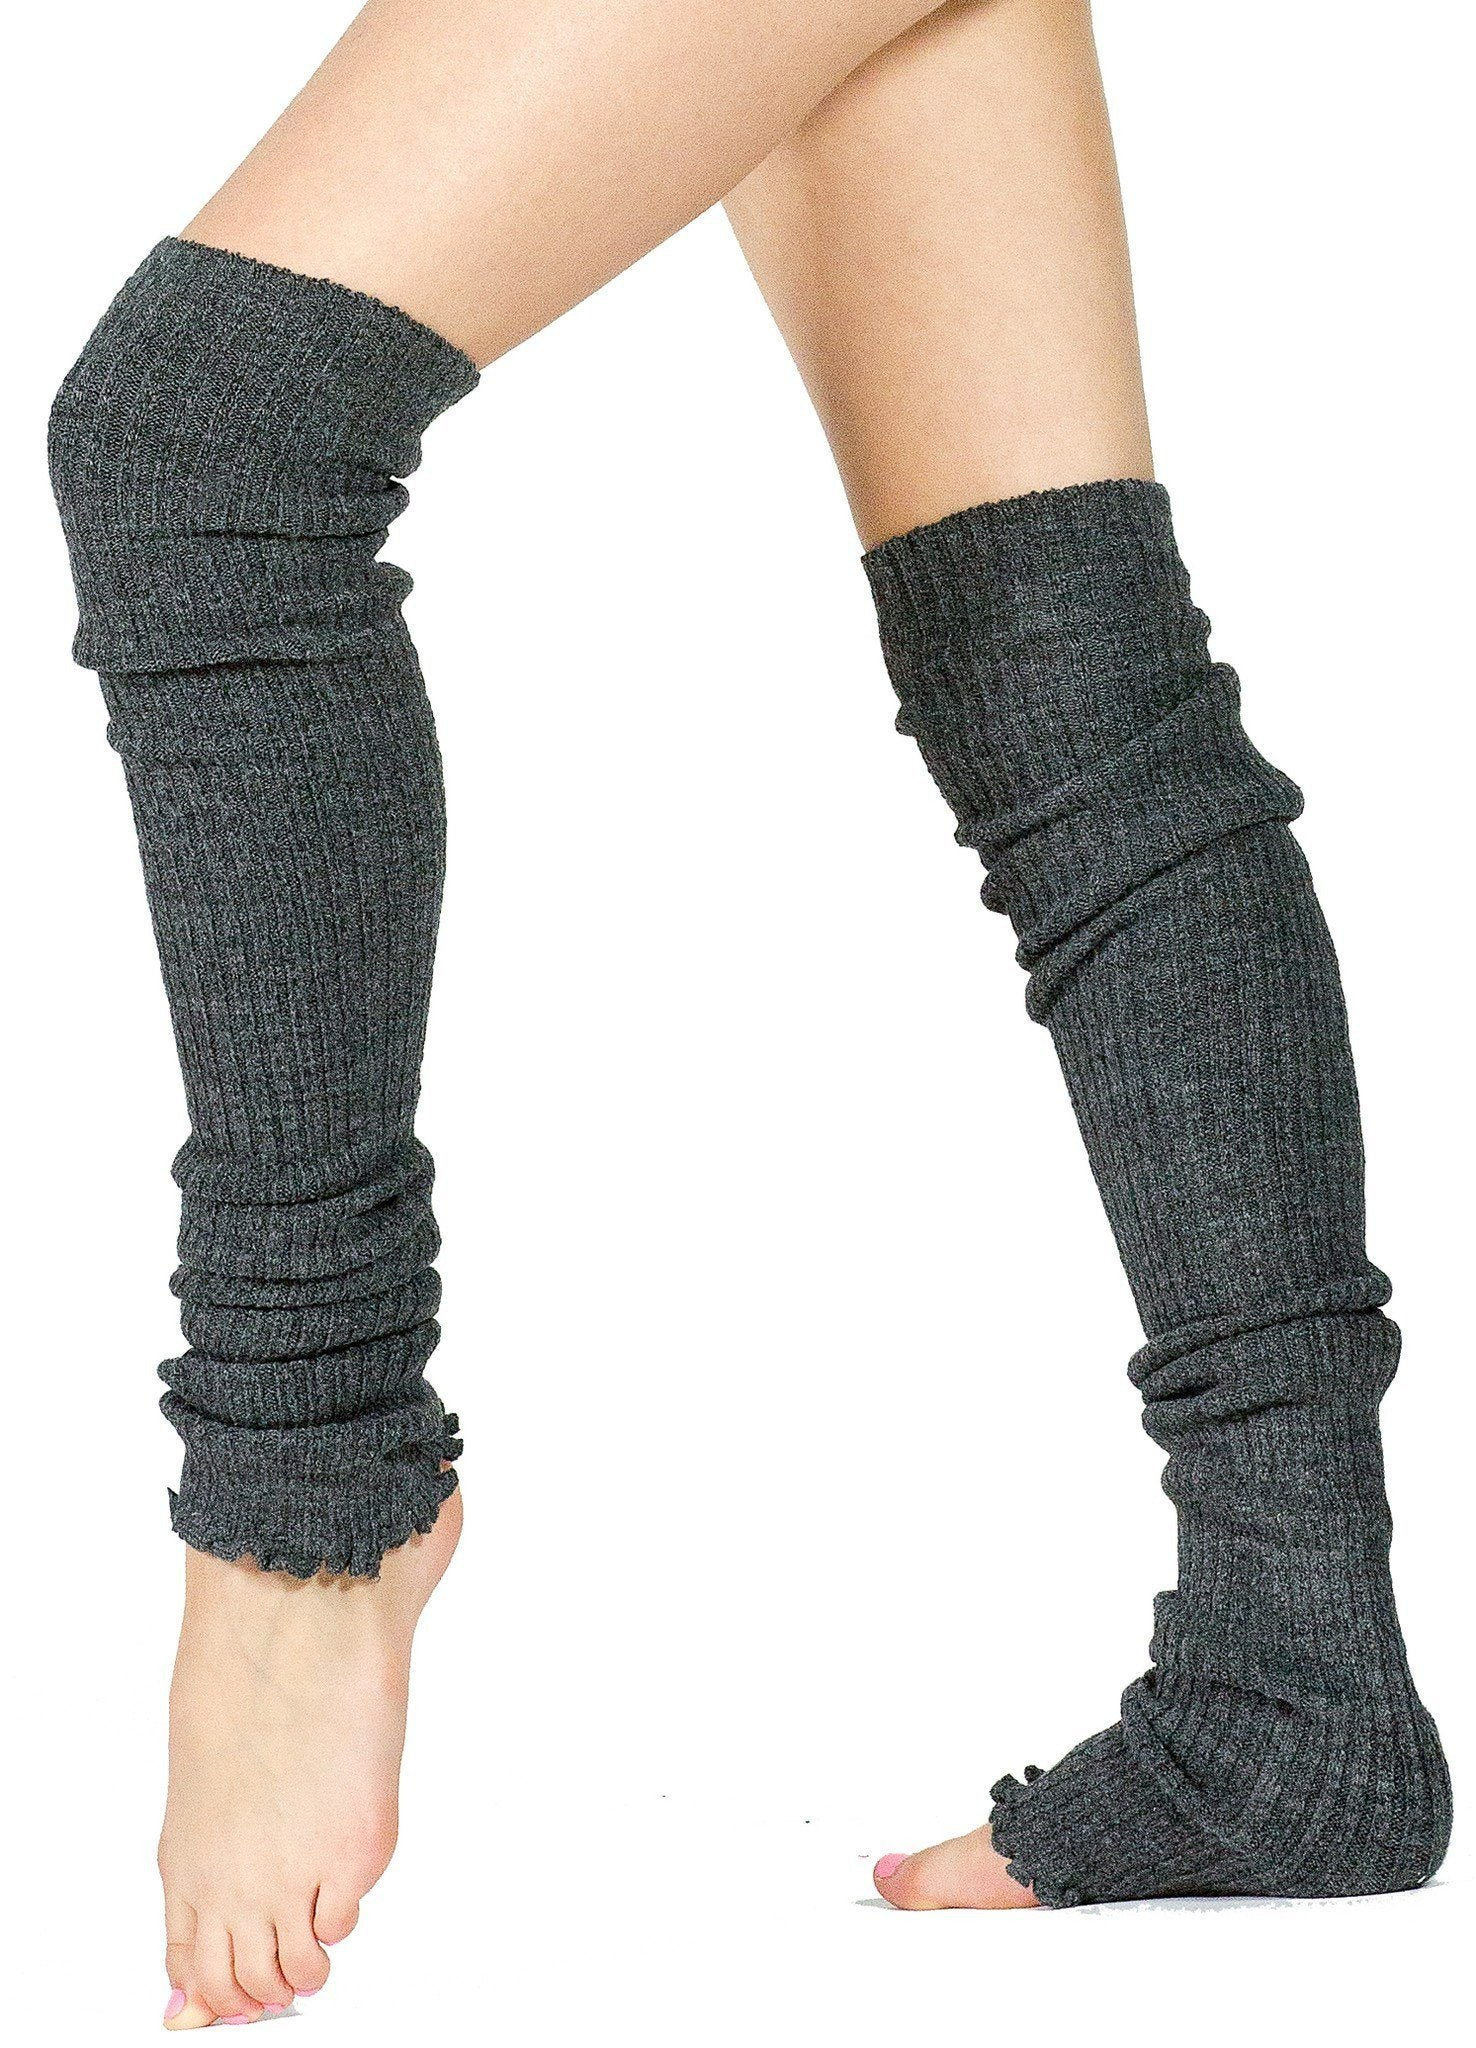 Thigh High Leg Warmers / 28 Inch / Dancewear / LegWarmers / Stretch Knit @KDdanceNewYork #MadeInUSA - 4